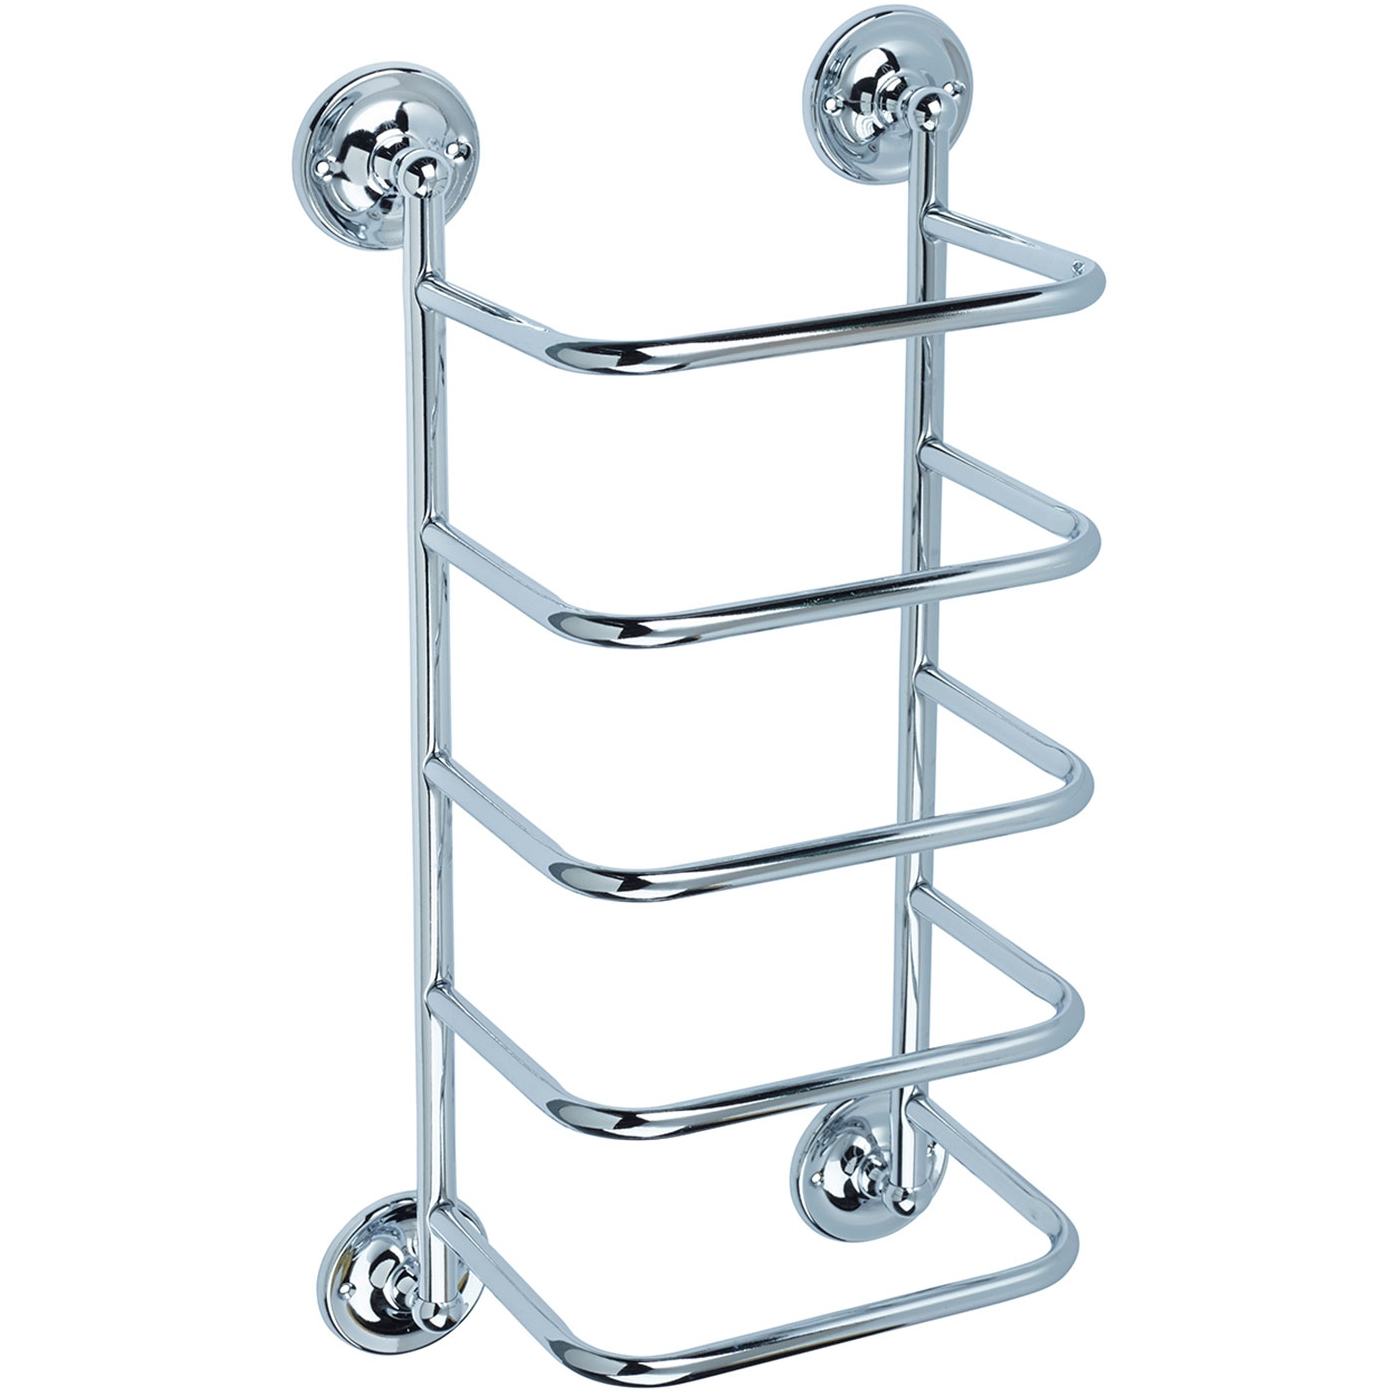 Bristan Bathroom Towel Stacker - Chrome